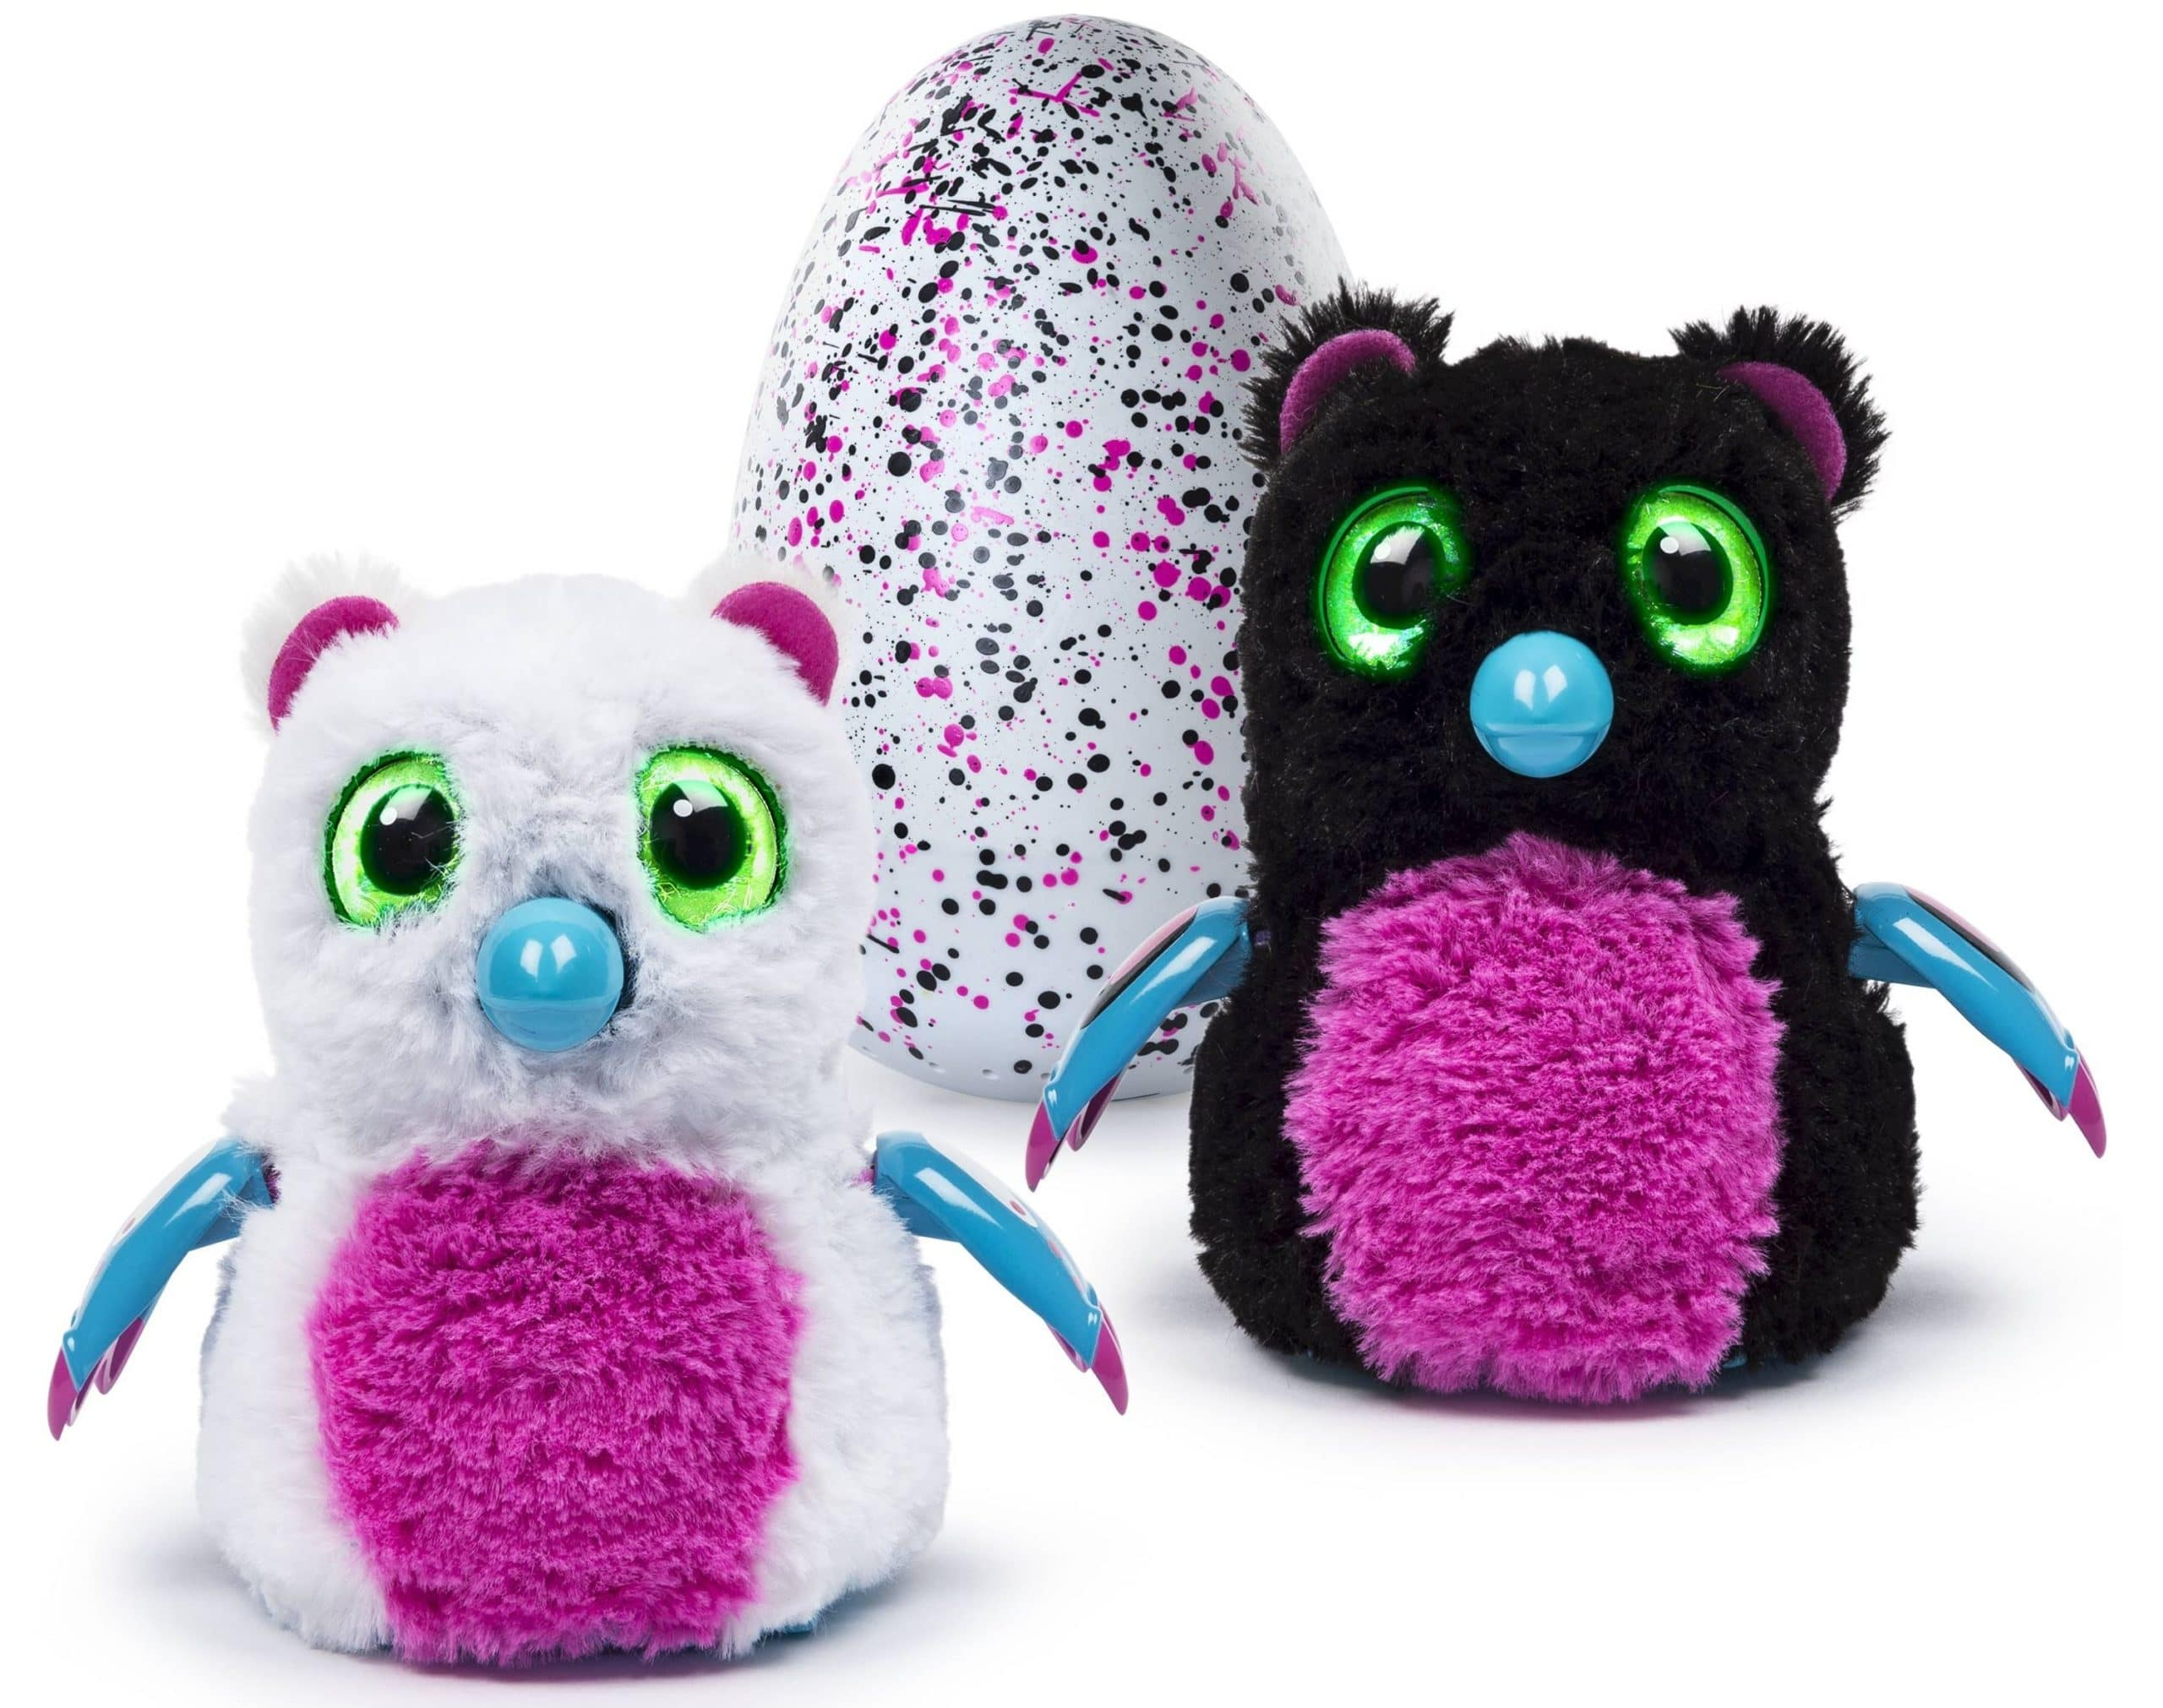 Bearakeet Hatchimal from Target 2017 - 2018 by Spin Master